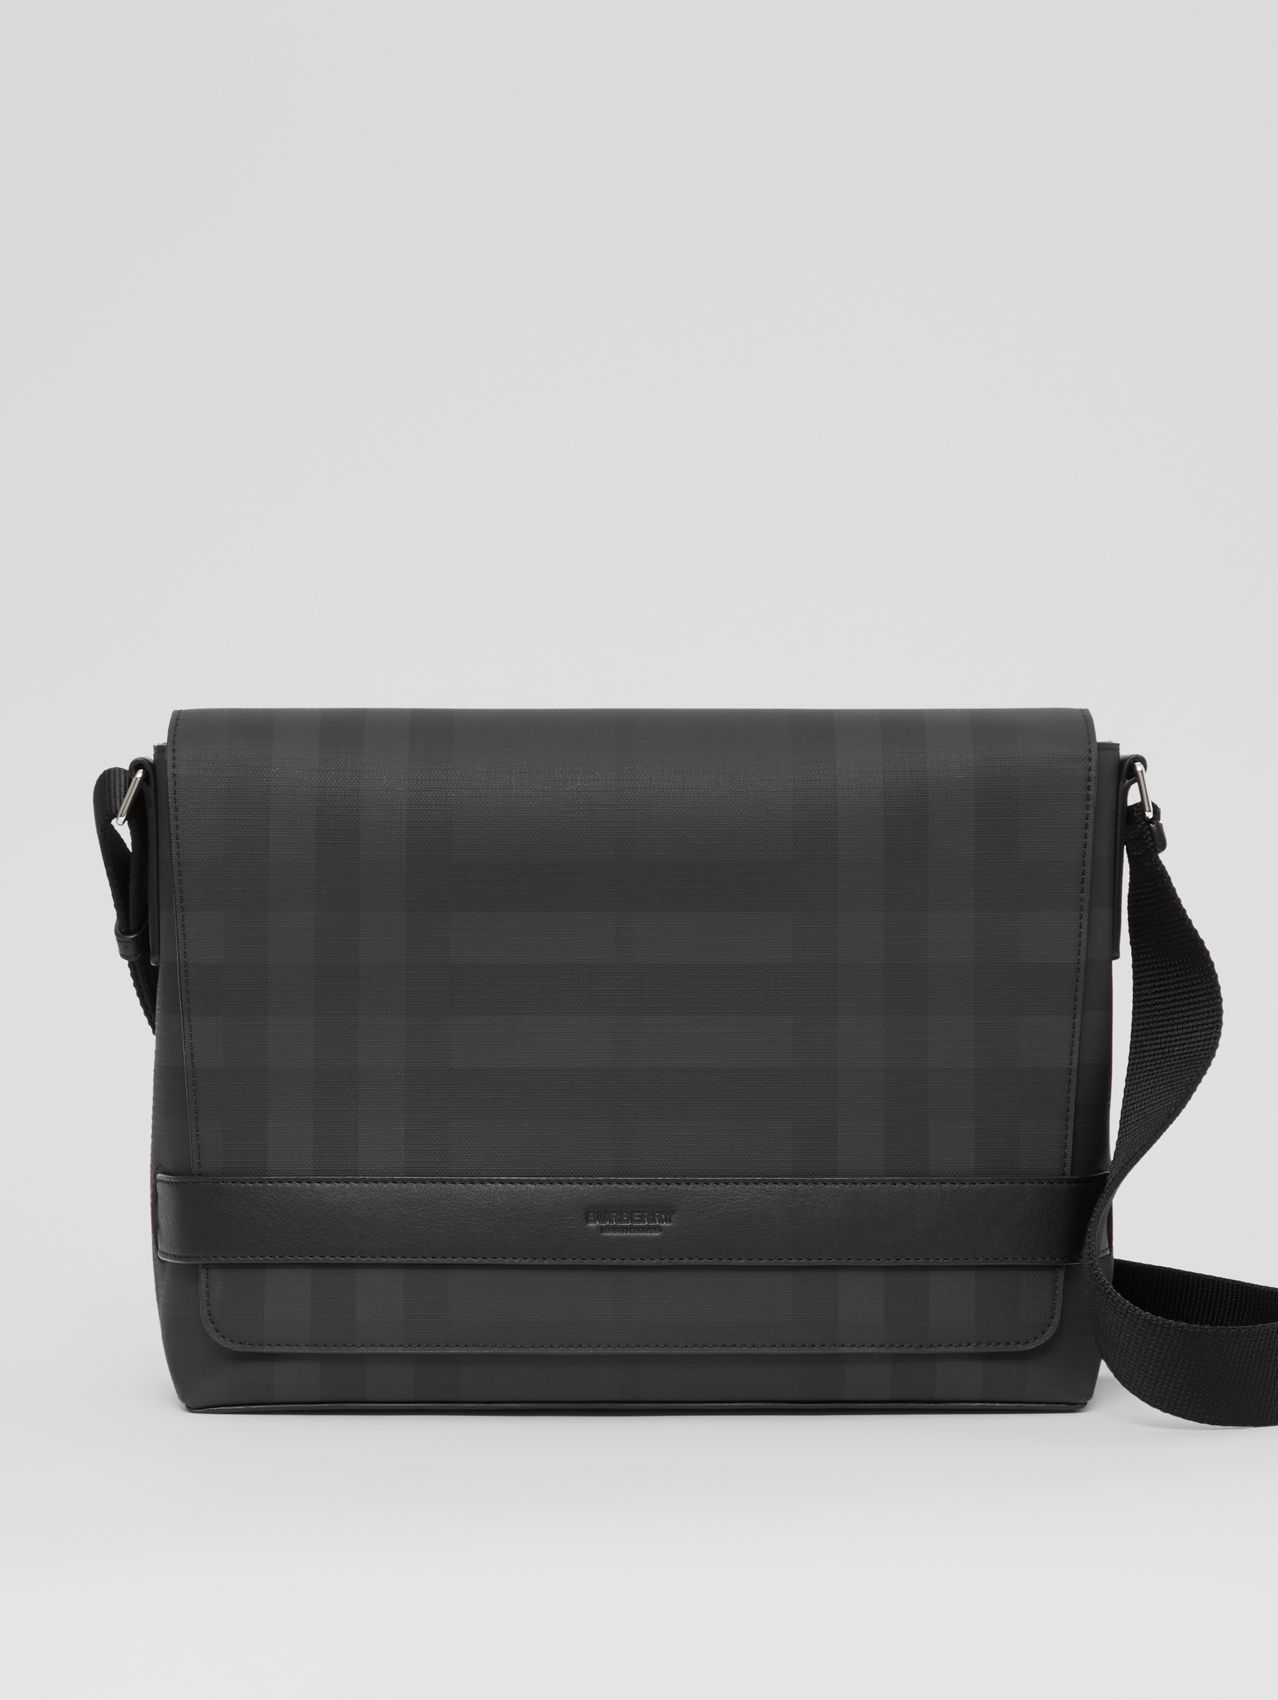 Borsa messenger a tracolla con motivo London check e finiture in pelle (Nero Fumo Scuro)